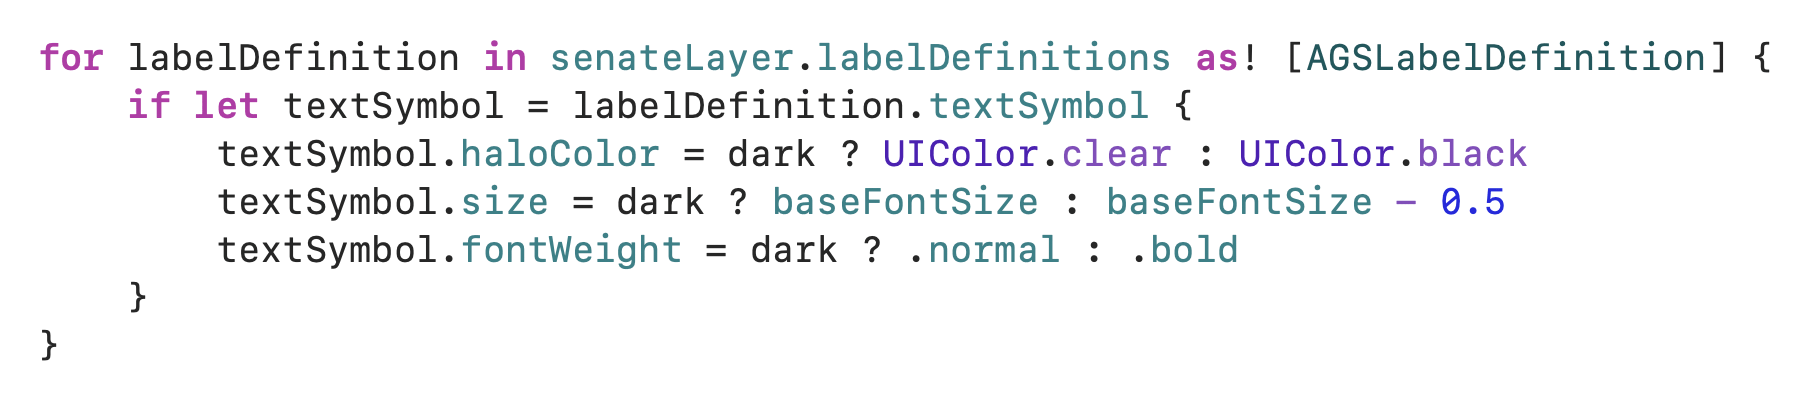 Swift code for updating labels